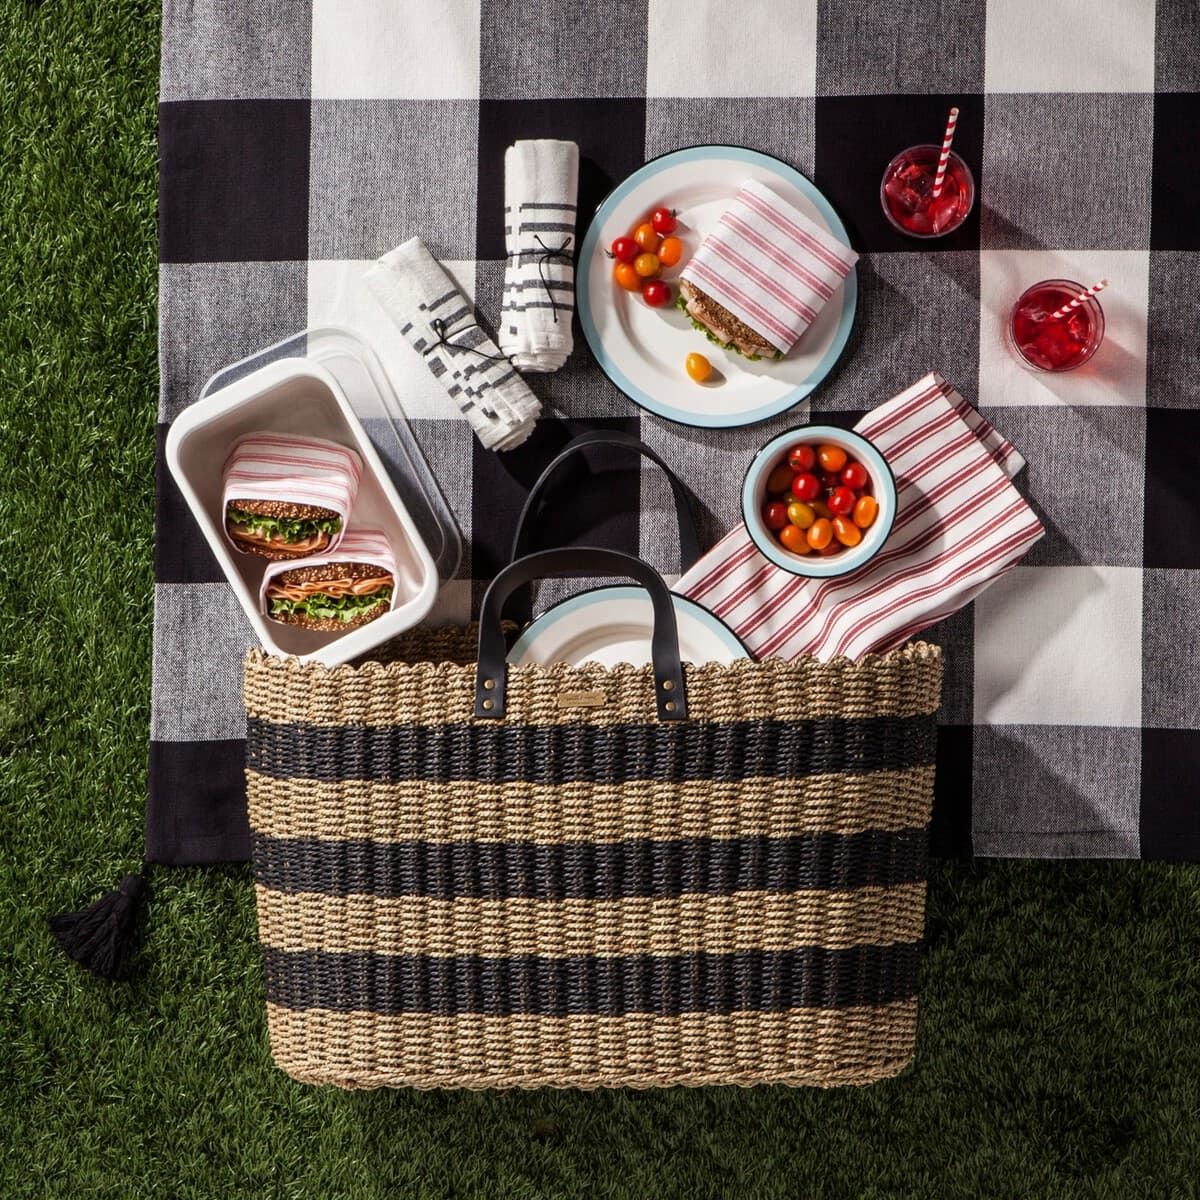 New Hearth & Hand Summer Line At Target!